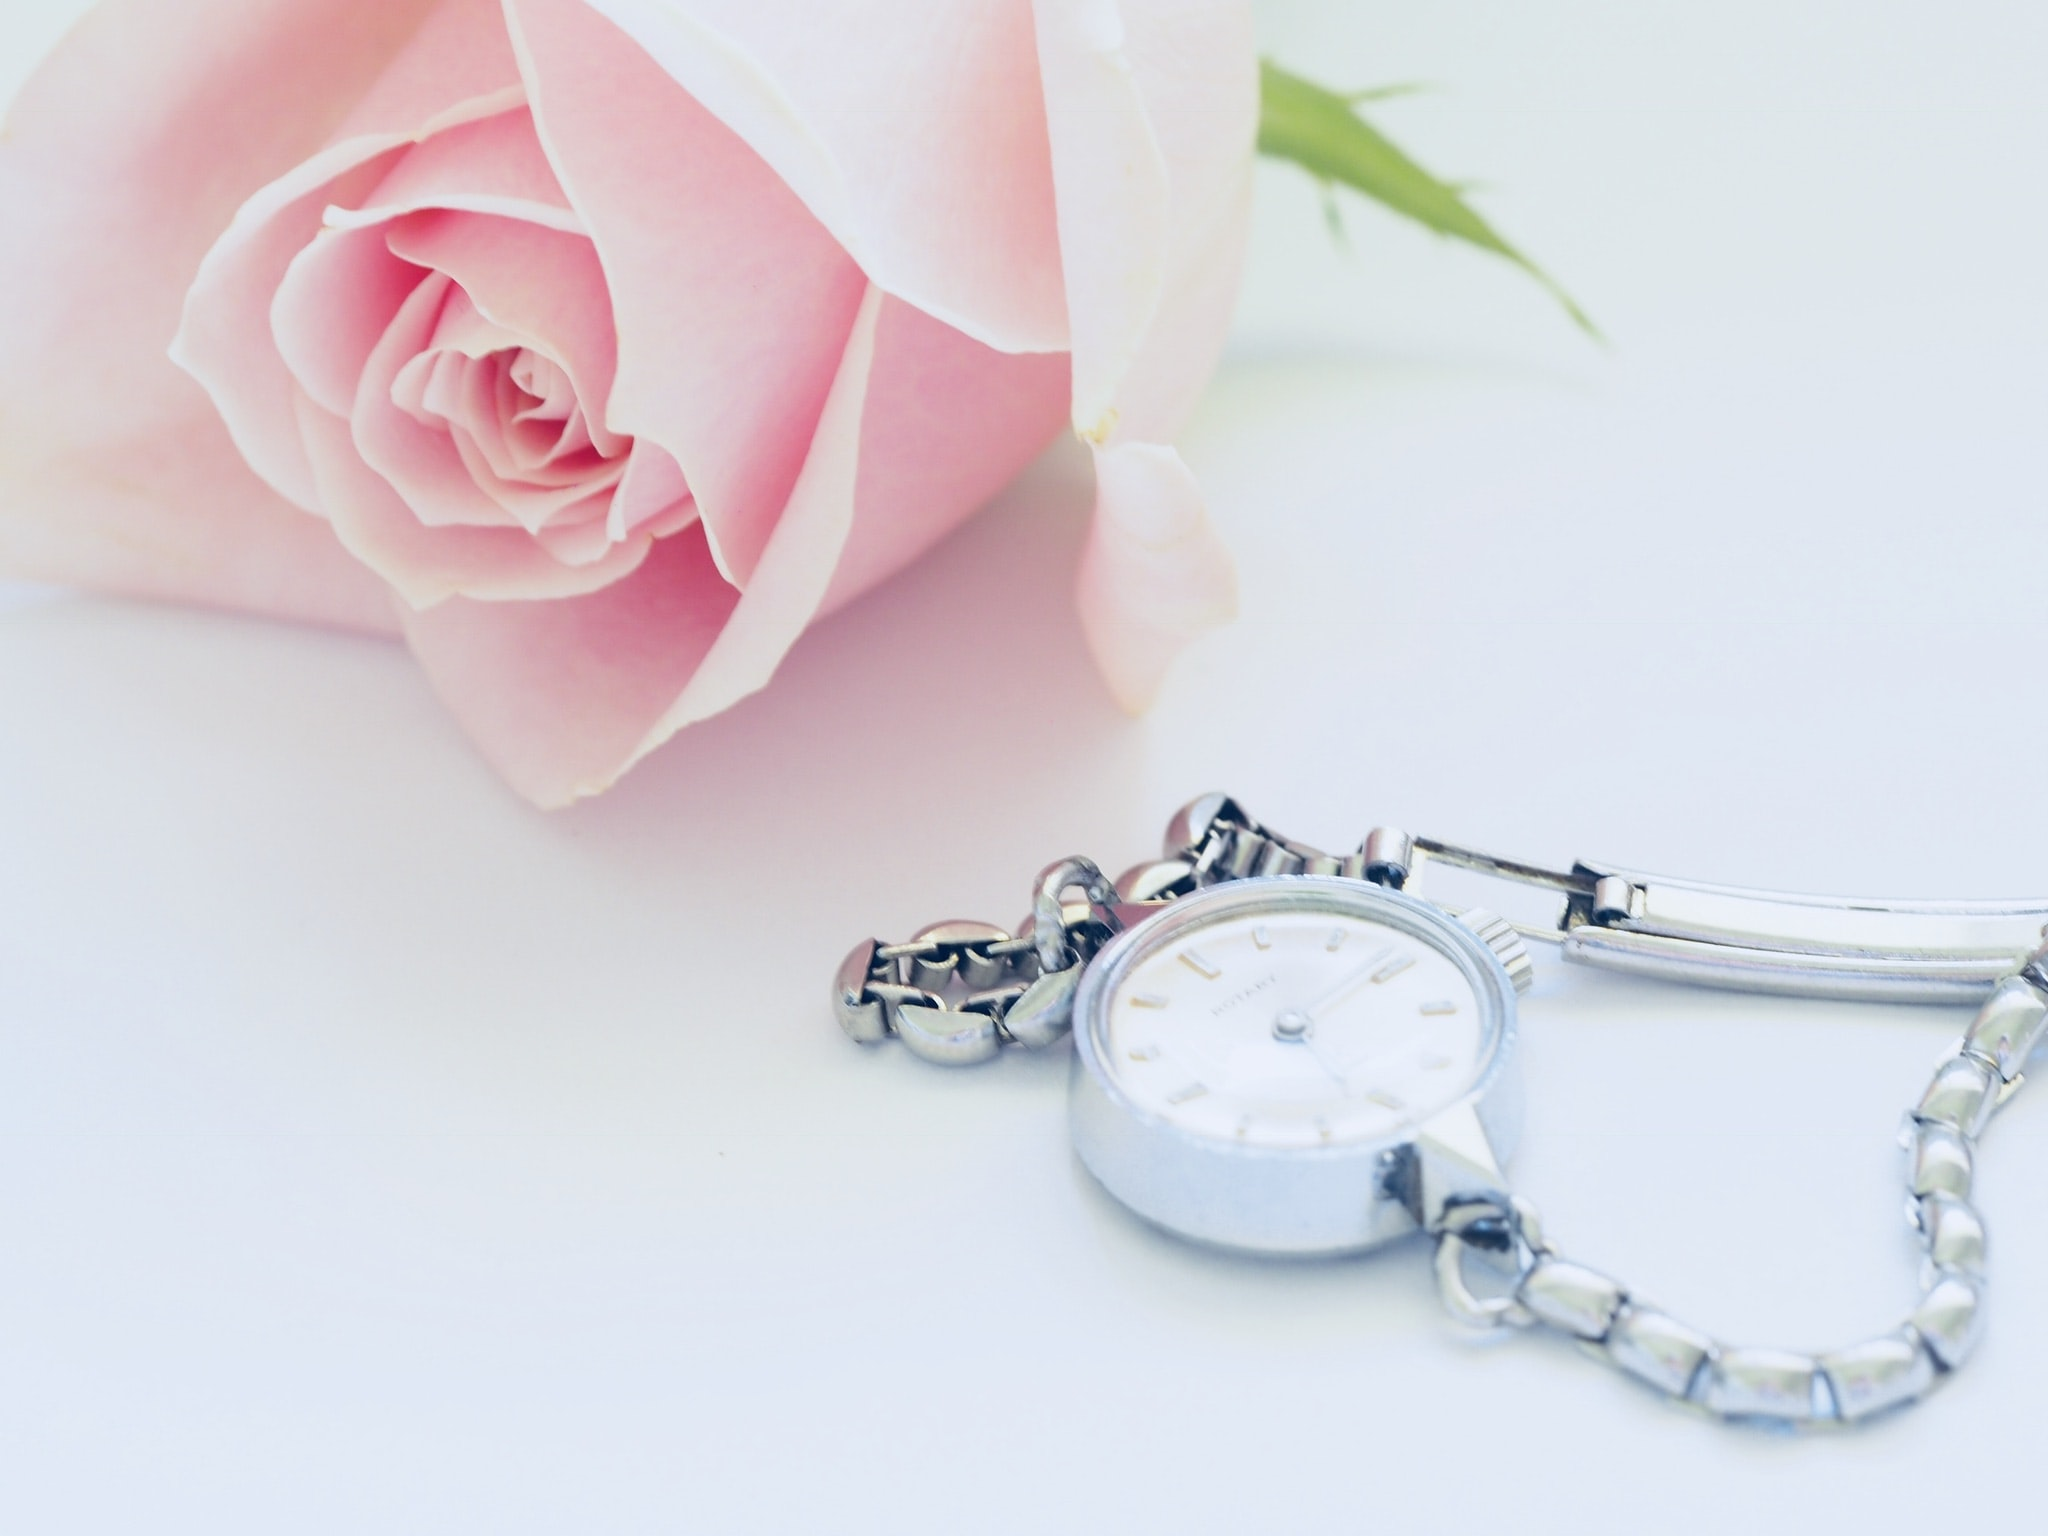 round white analog watch beside pink rose